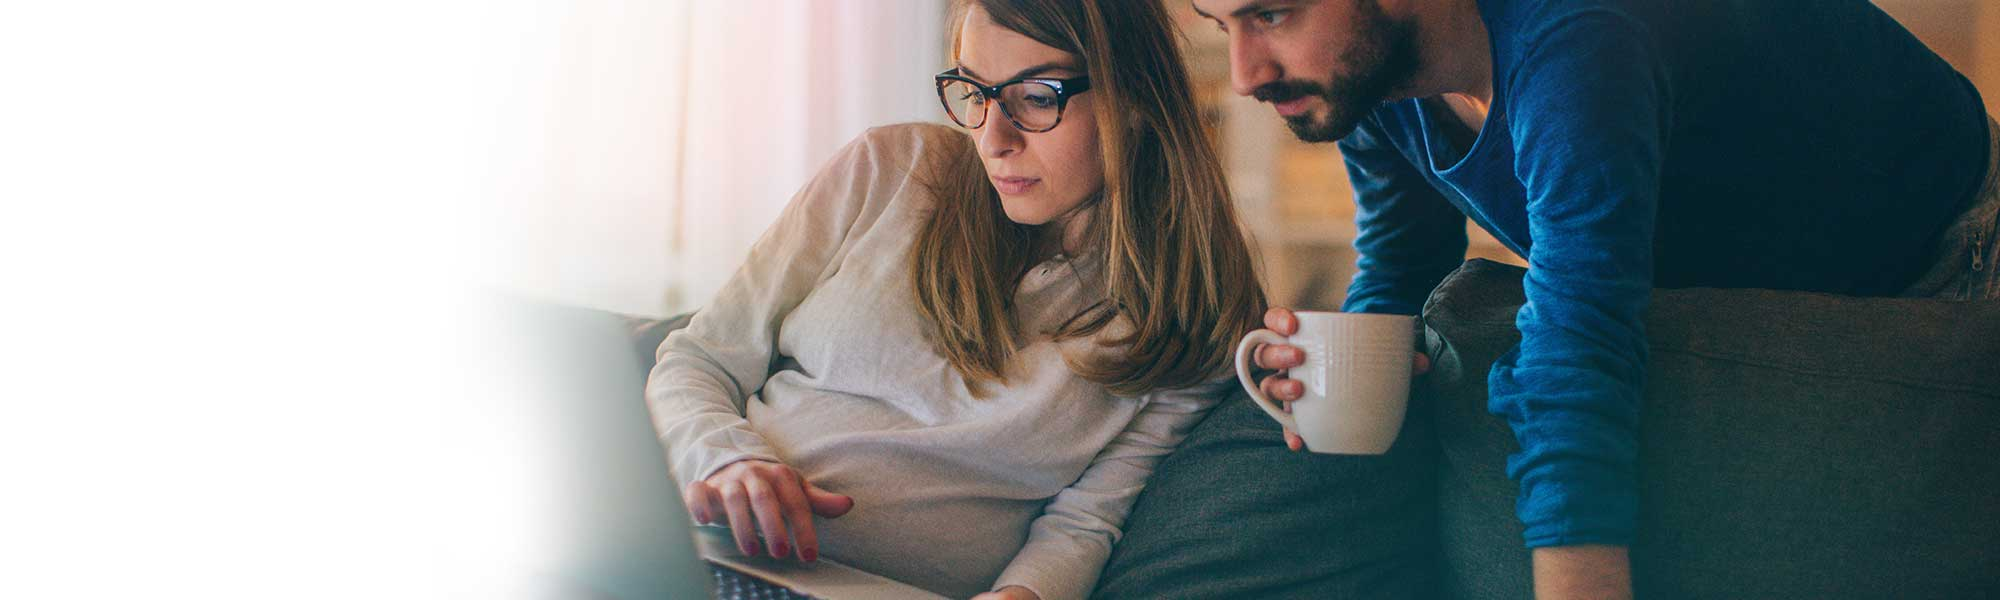 man and woman on couch looking on tablet